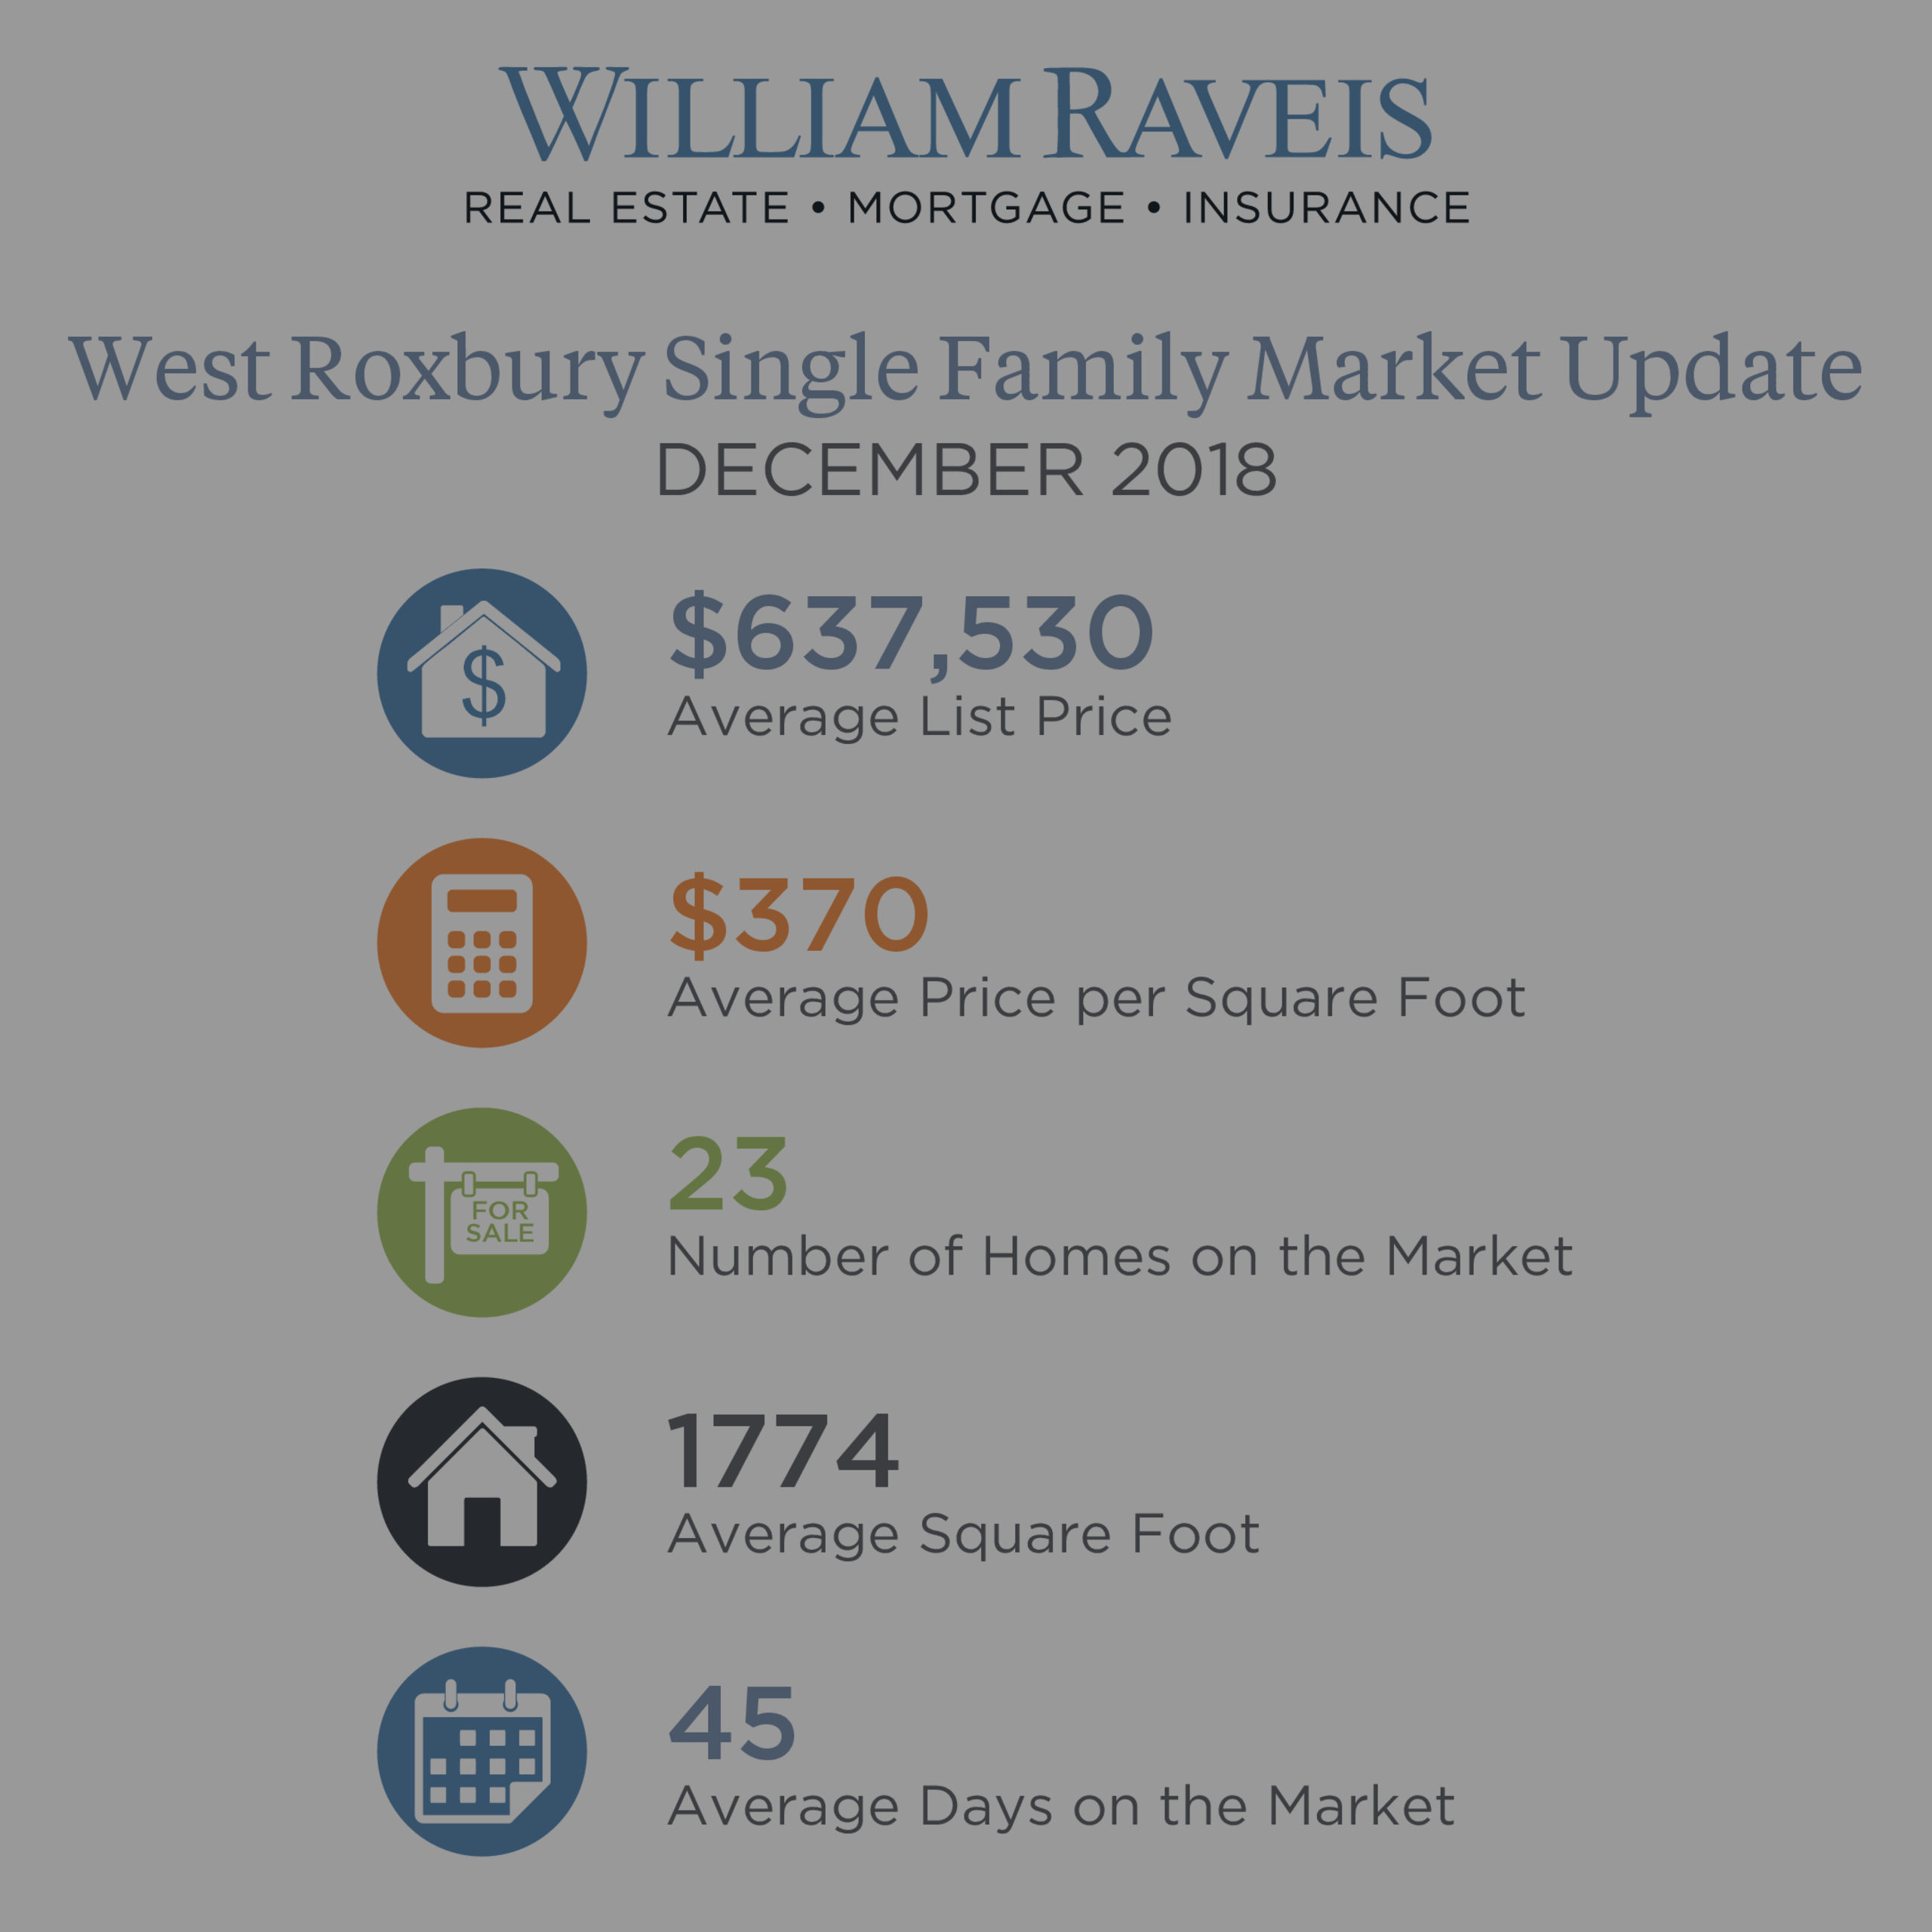 West Roxbury Housing Market Update December 2018